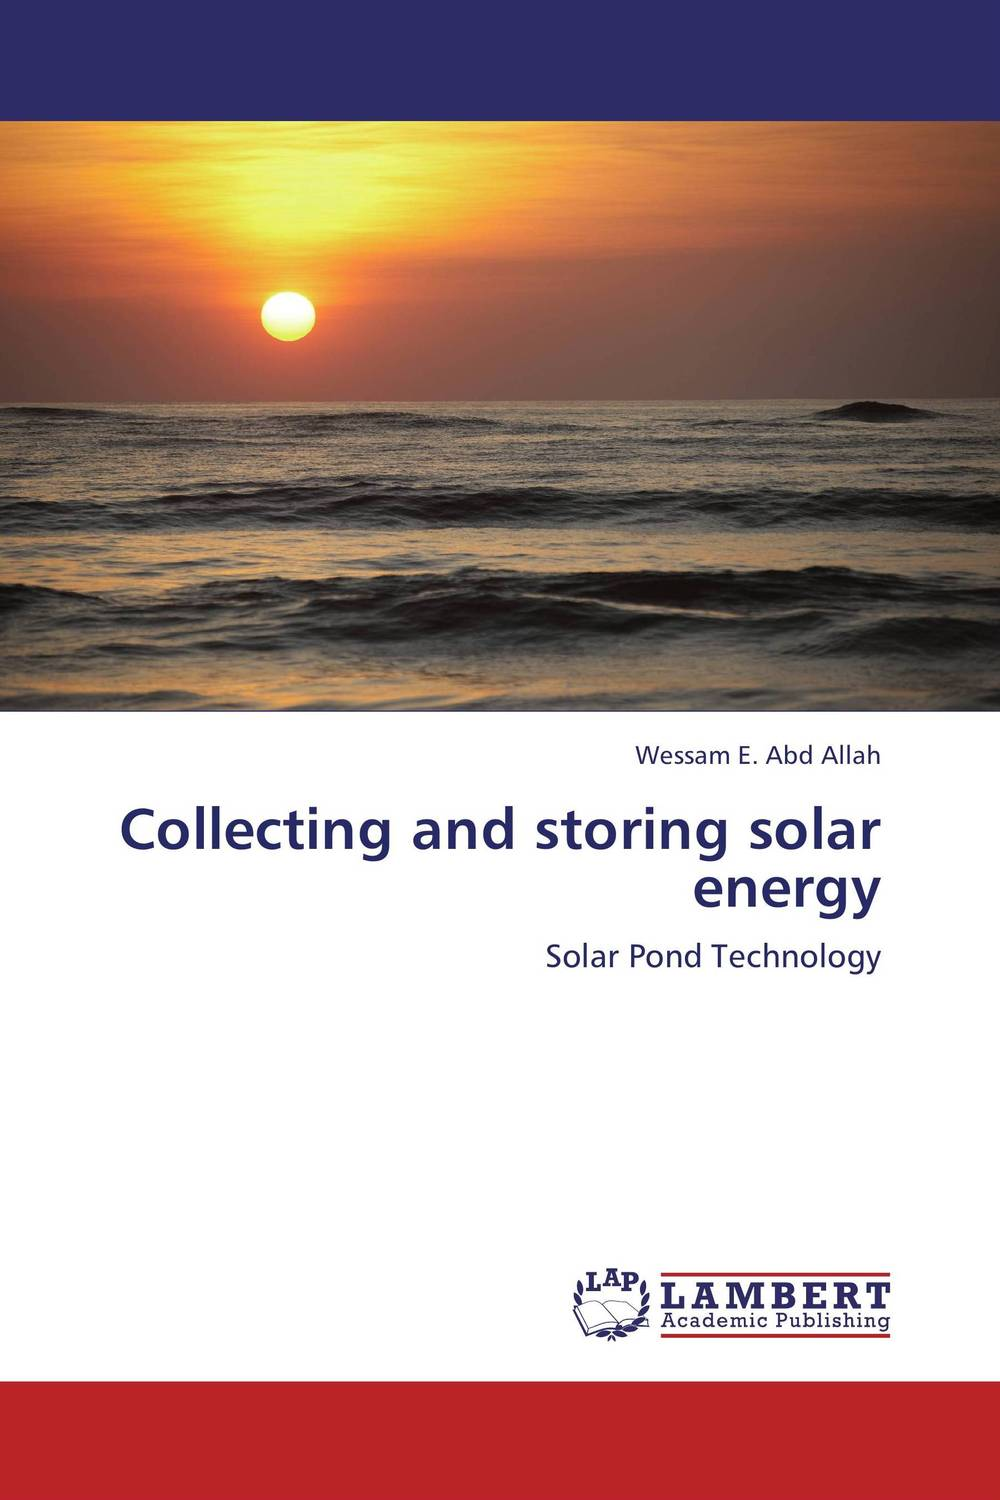 Collecting and storing solar energy storing and retrieving xml documents to and from rdbms